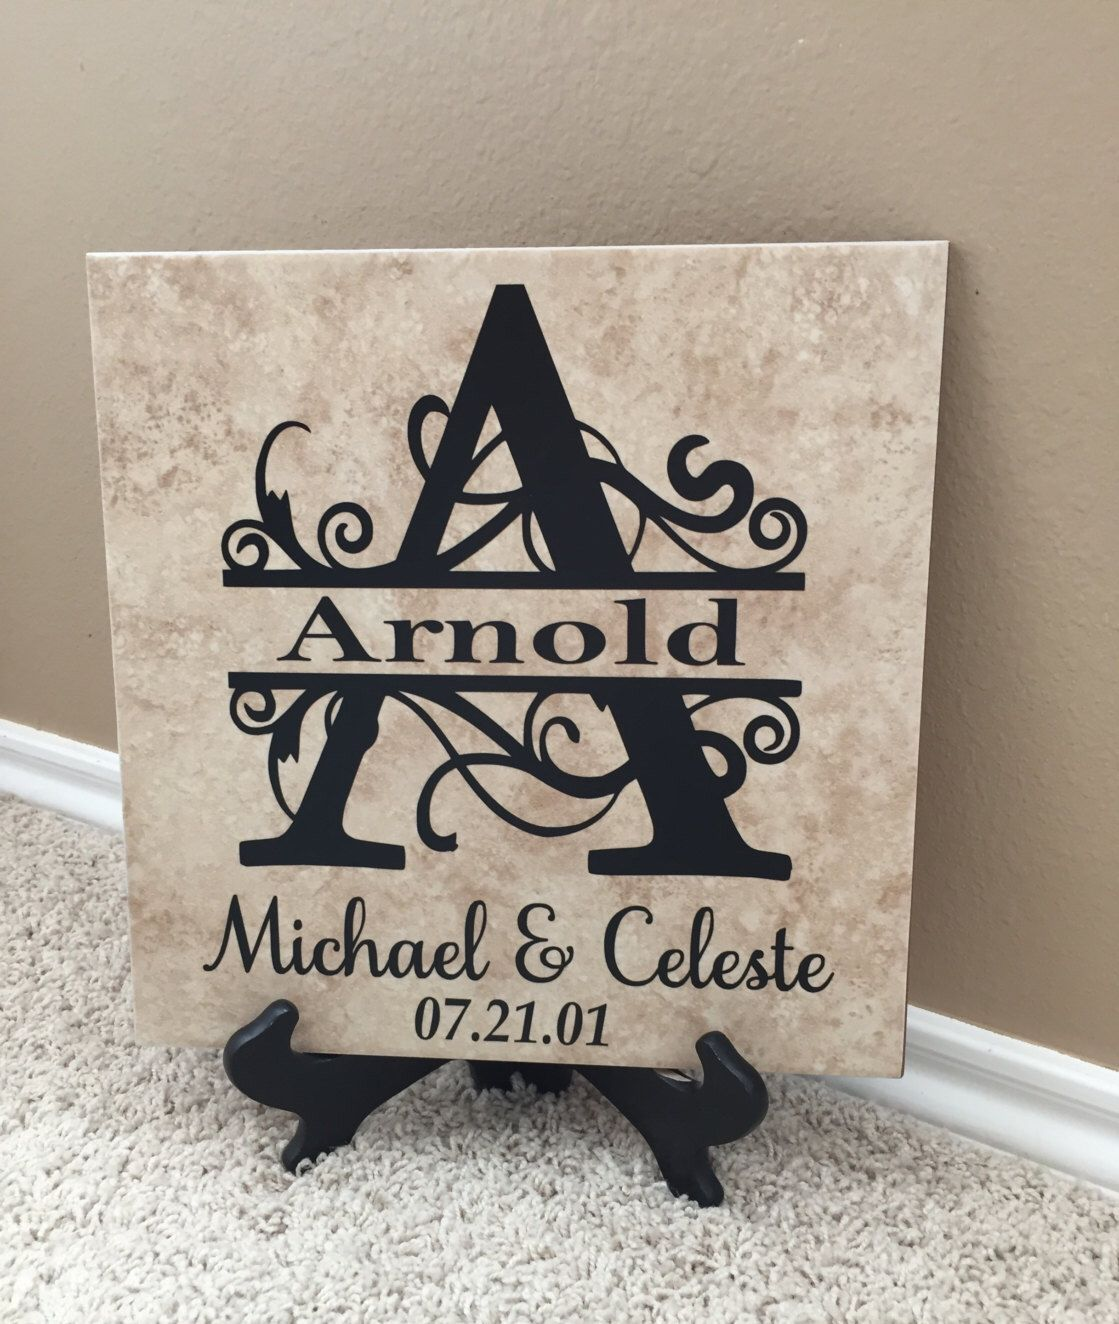 Personalized Tile Wedding Gift Personalized Gifts For Etsy Personalized Wedding Gifts Personalized Couple Gifts Couple Gifts